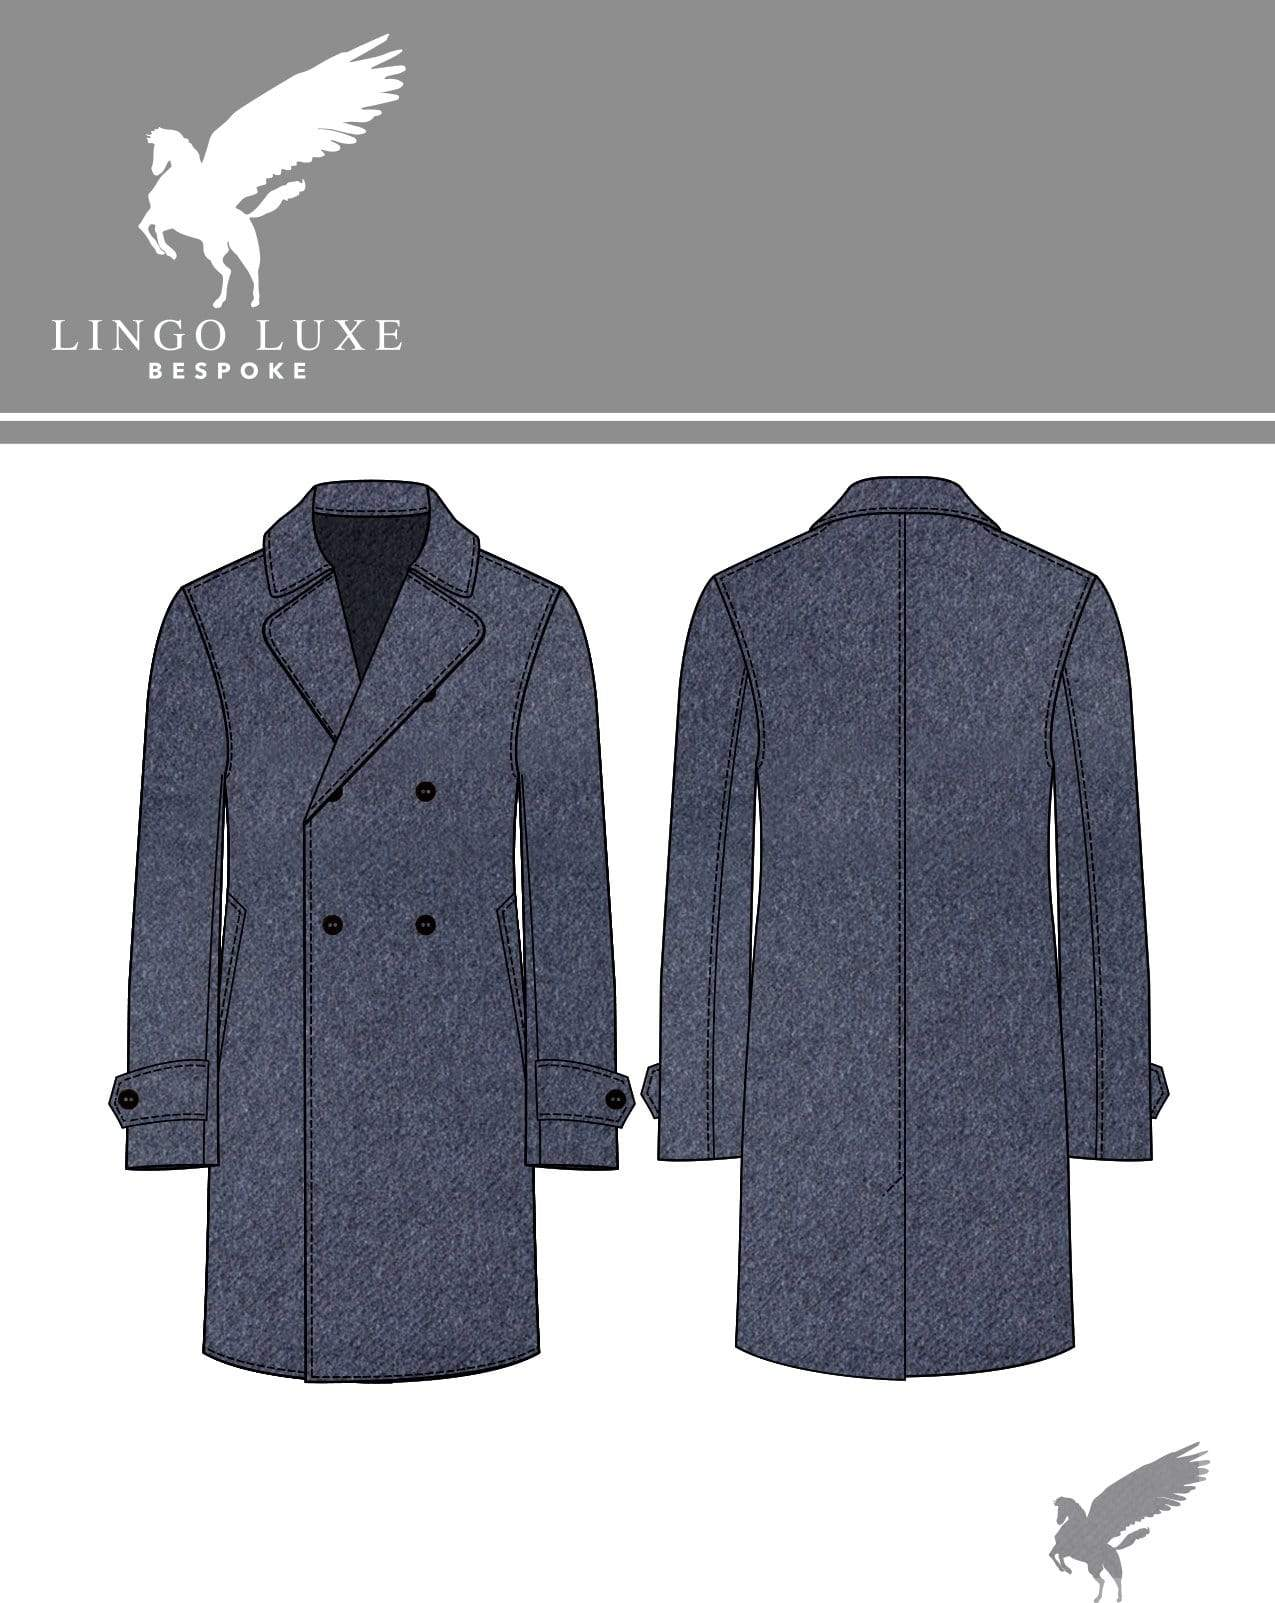 Outerwear | Lingo Luxe The Stately Overcoat | Steely Dan-Lingo Luxe Bespoke